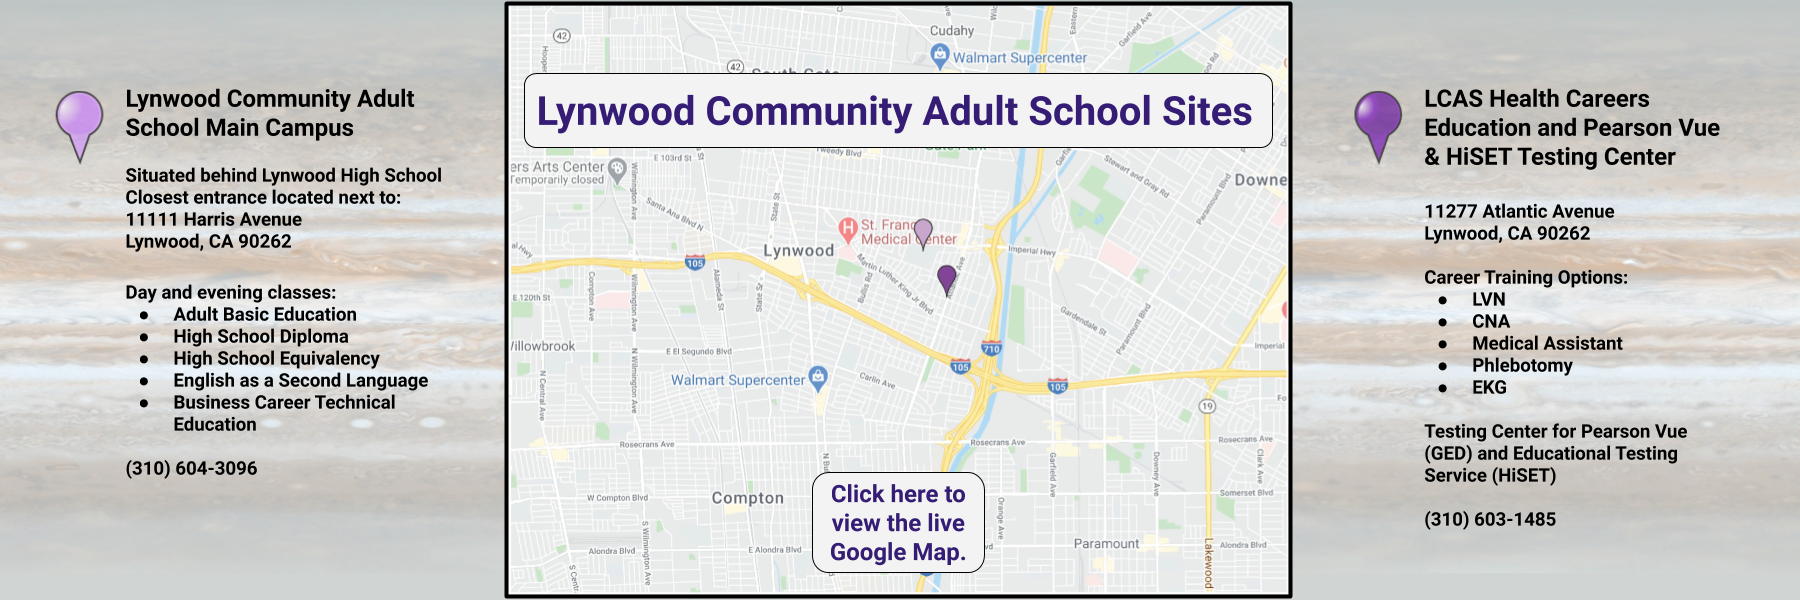 Clickable Map of Lynwood Community Adult School sites